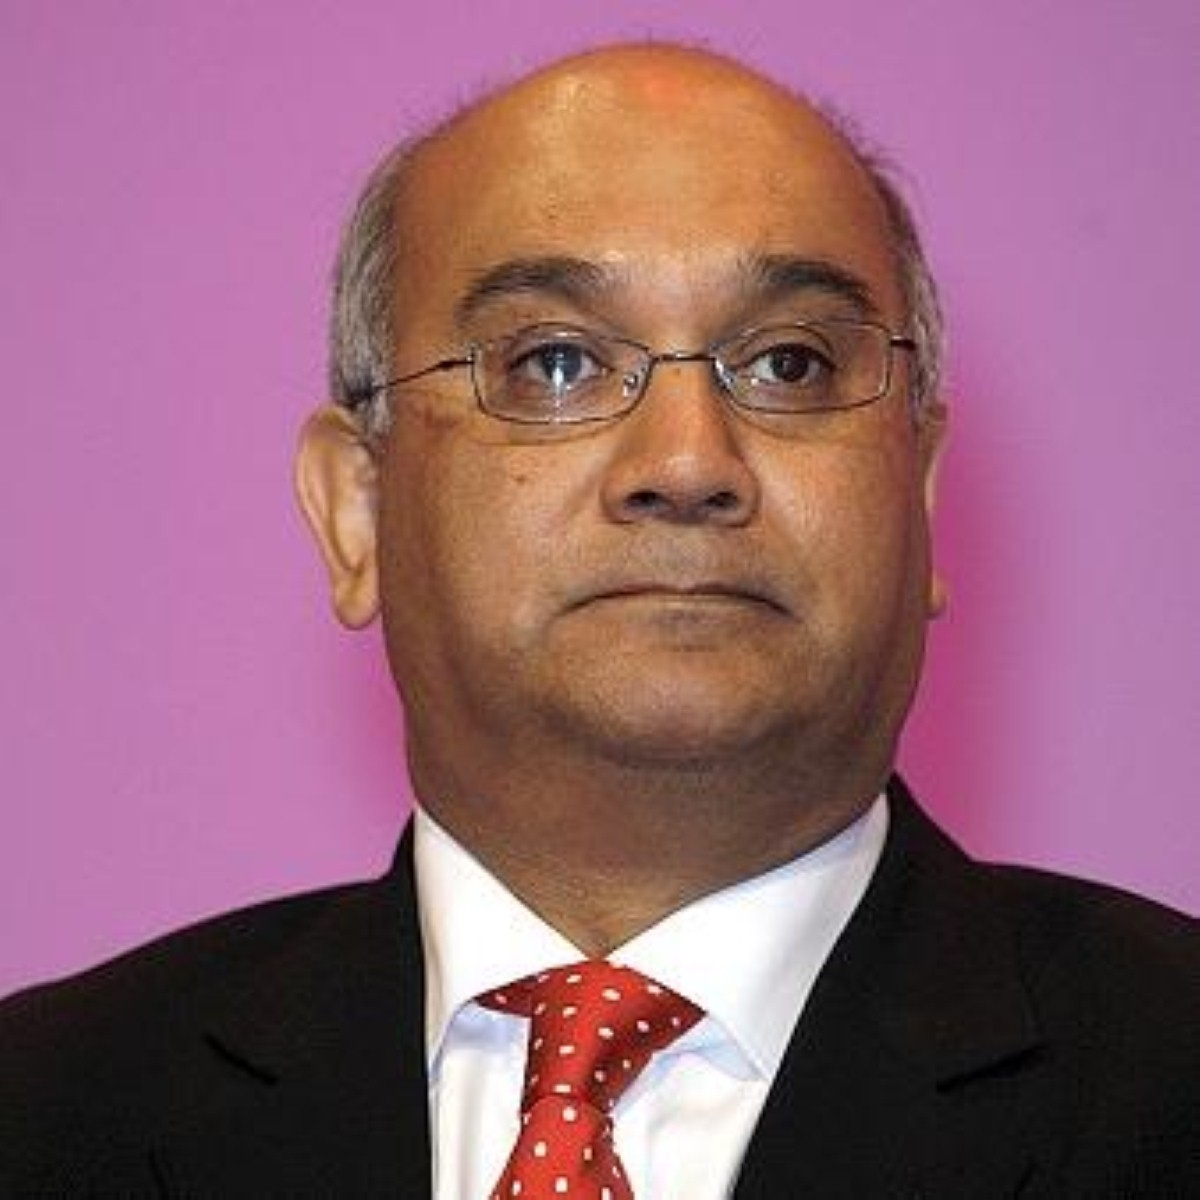 Vaz has written to Brooks and Yates demanding more information